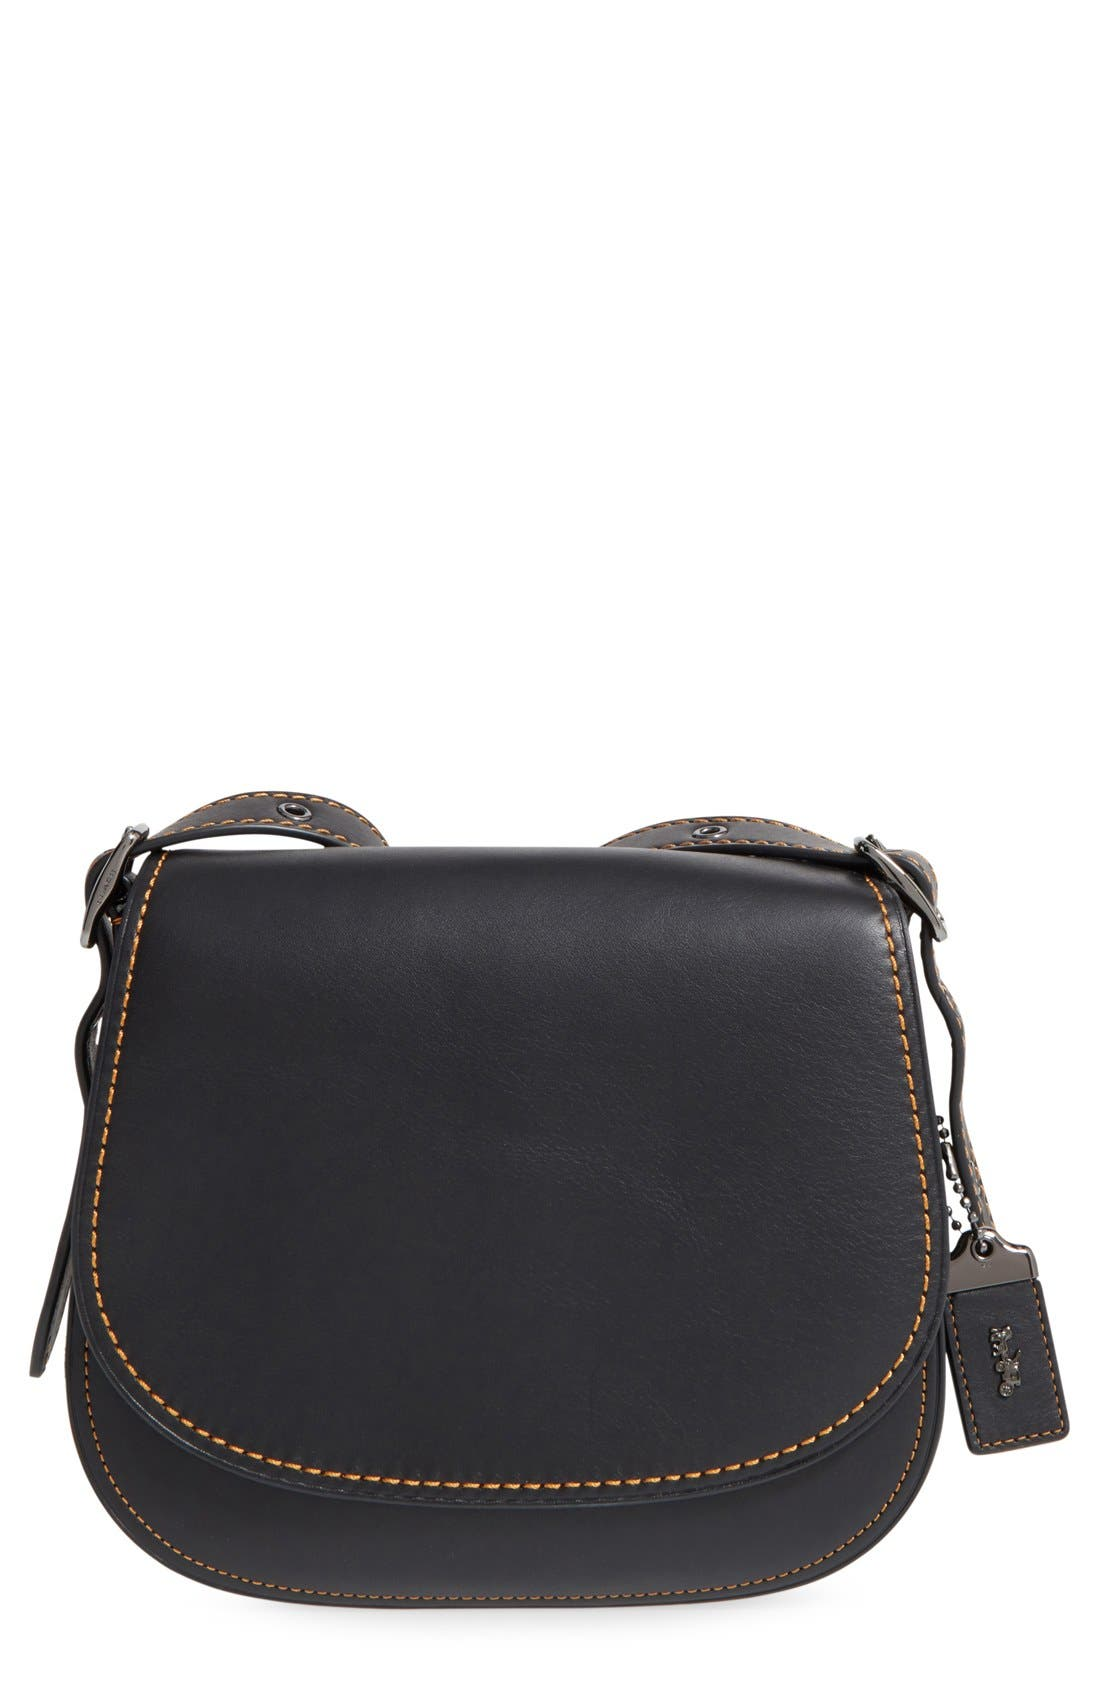 COACH,                             1941 '23' Leather Saddle Bag,                             Main thumbnail 1, color,                             001